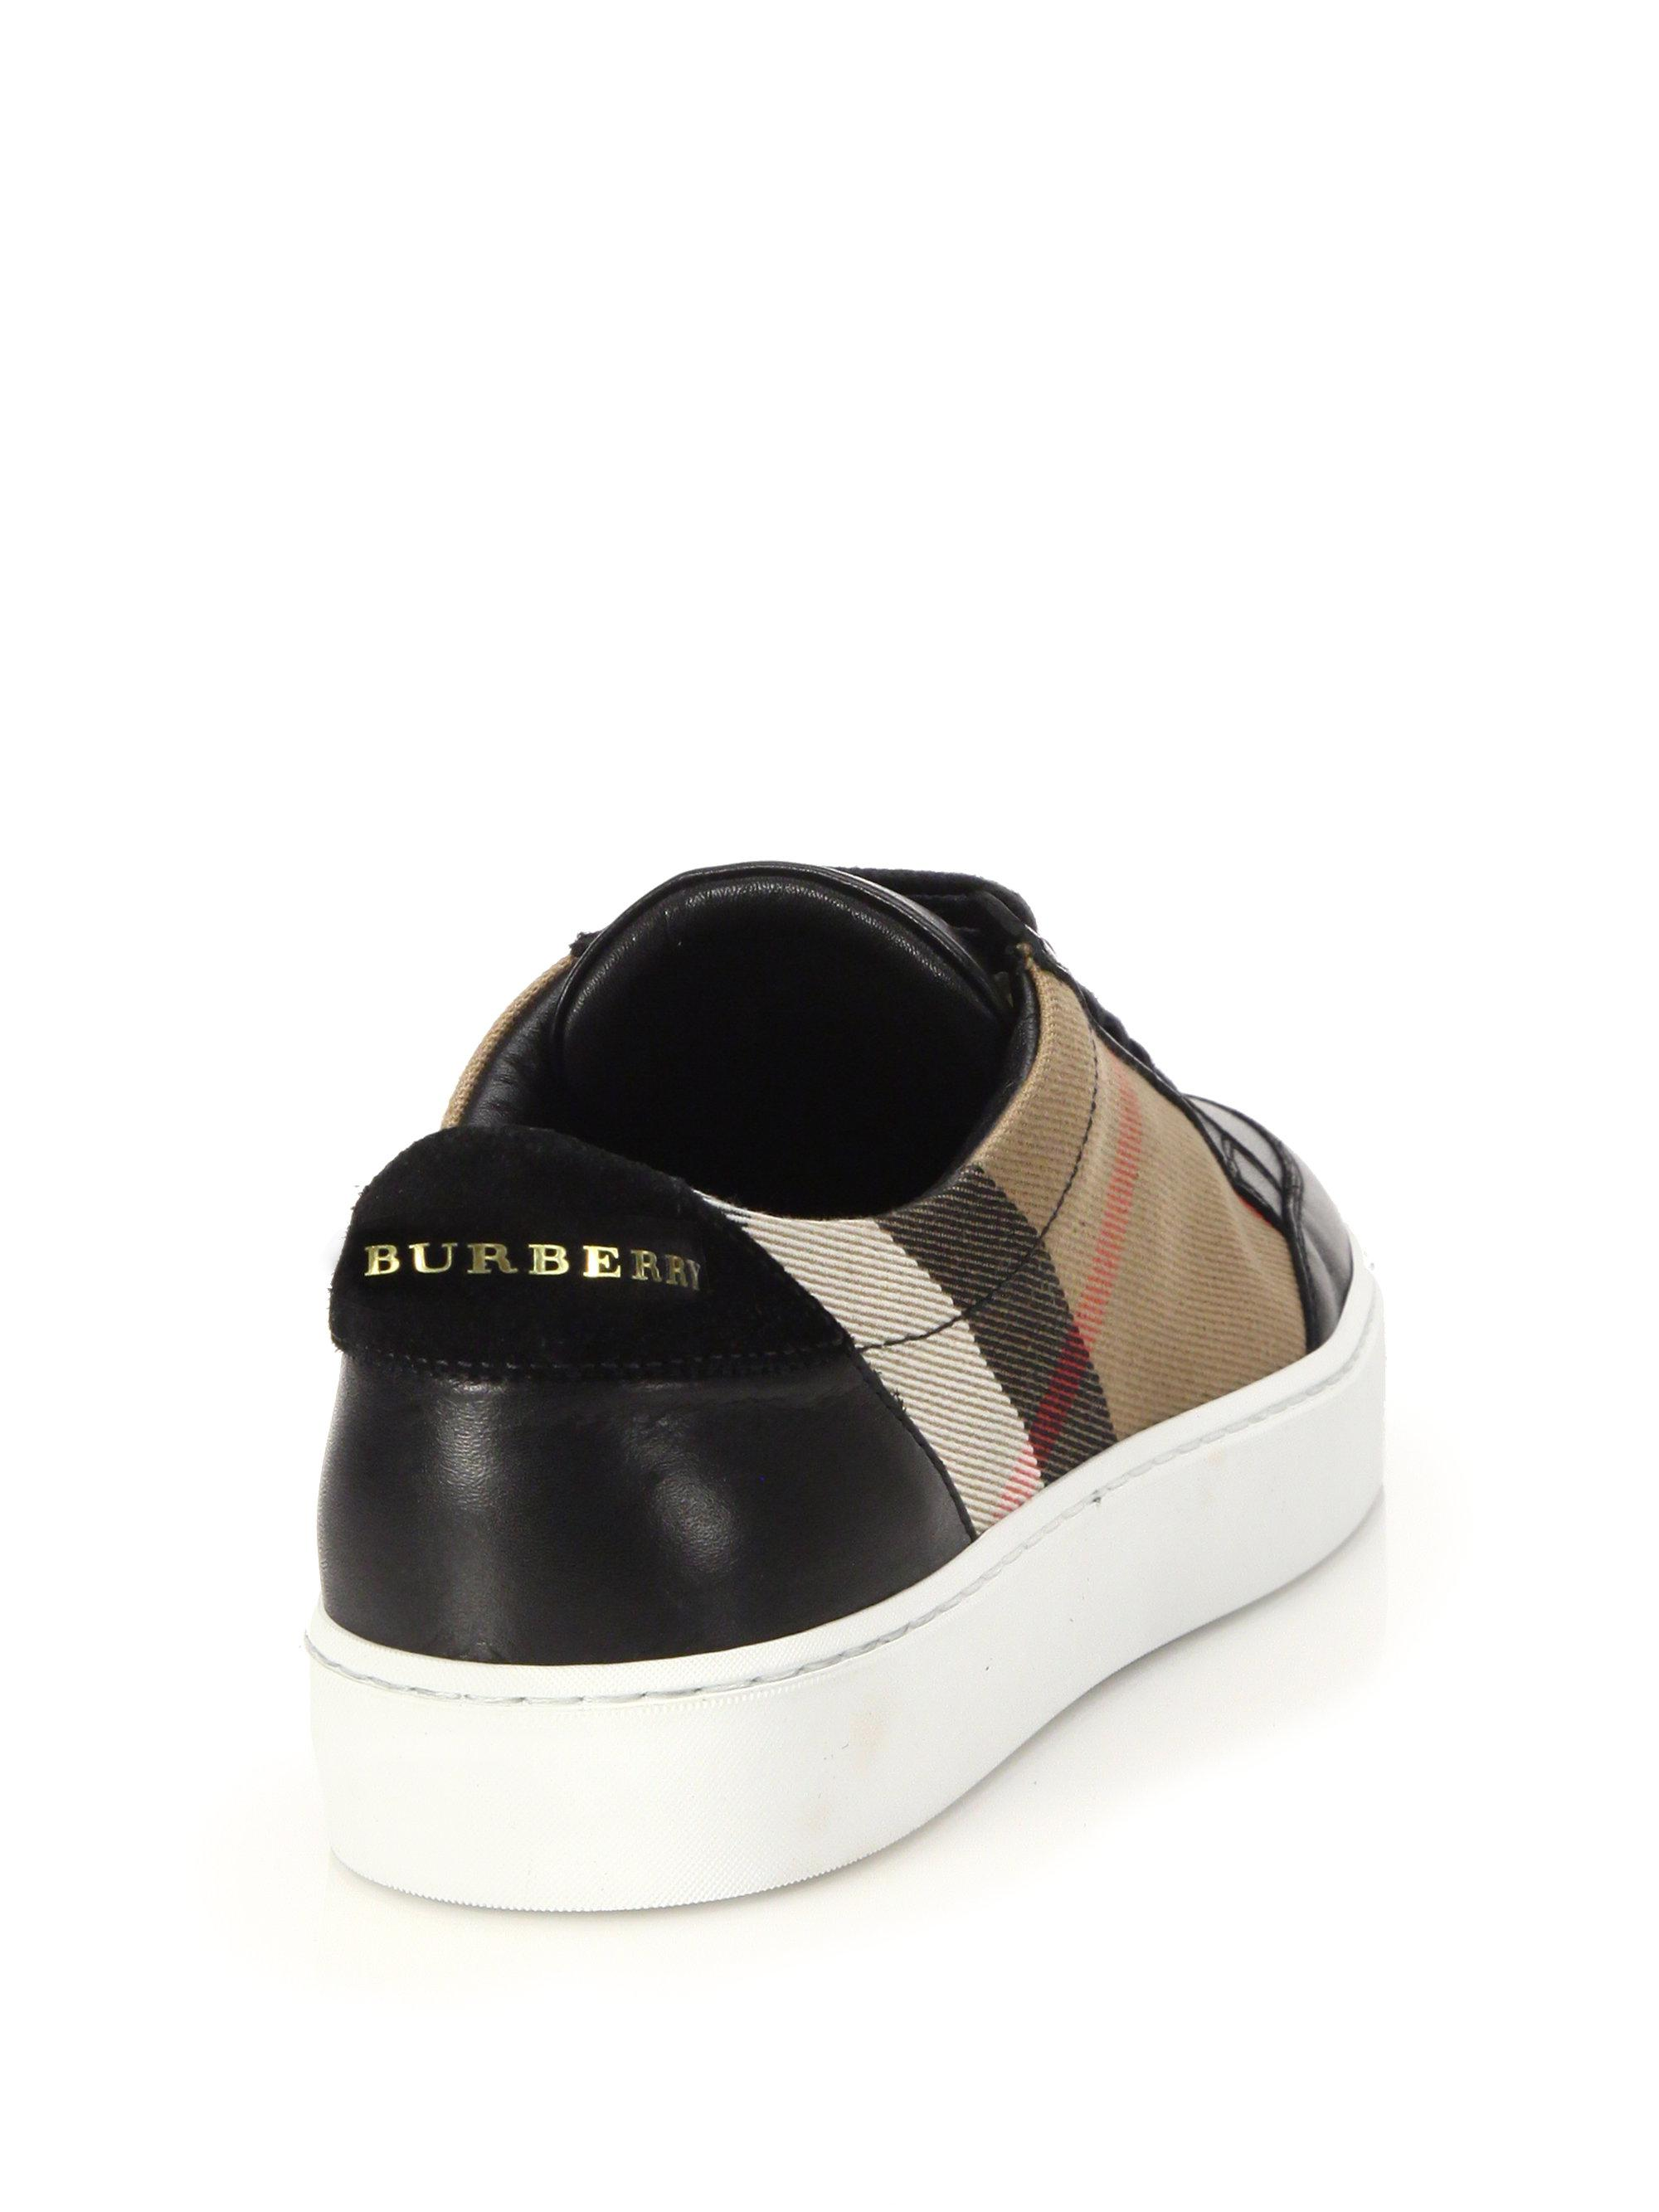 Burberry - Black Salmond House Check & Leather Sneakers for Men - Lyst.  View fullscreen